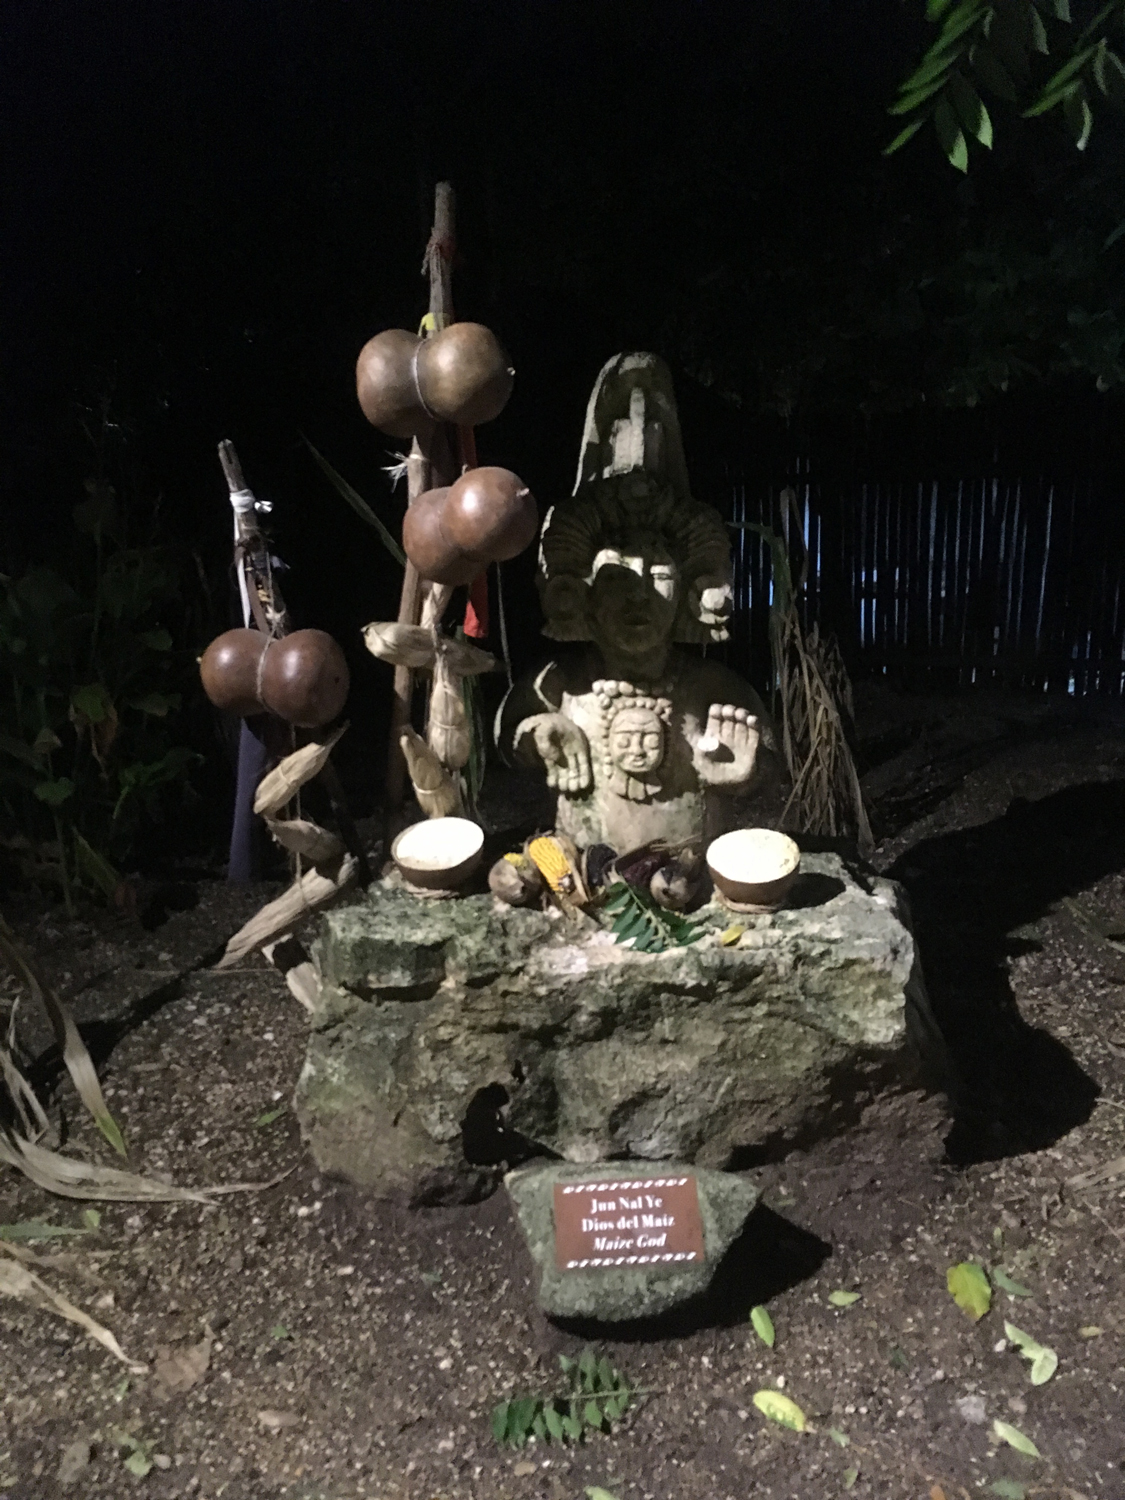 Offerings to the Maize God.